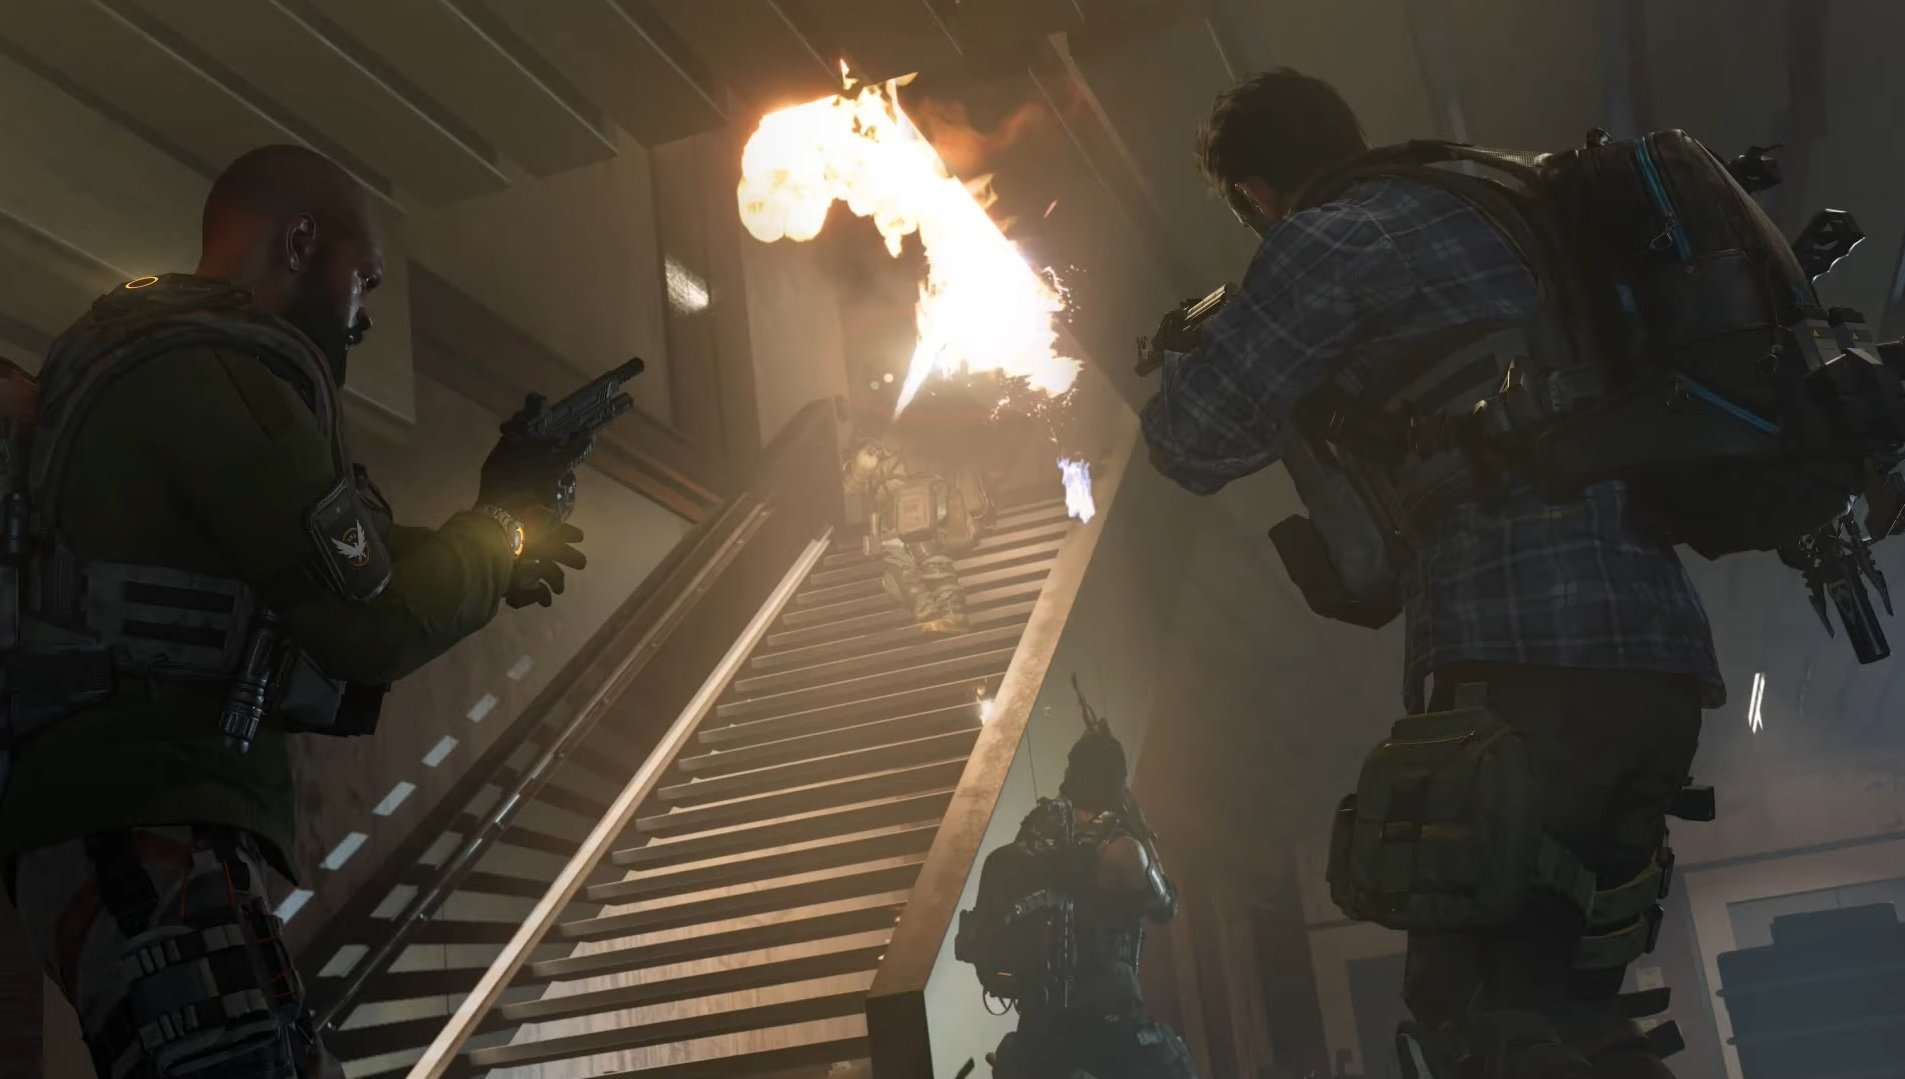 The Division 2 is getting a PvE challenge mode similar to Final Fantasy XIV's Heaven-on-High screenshot